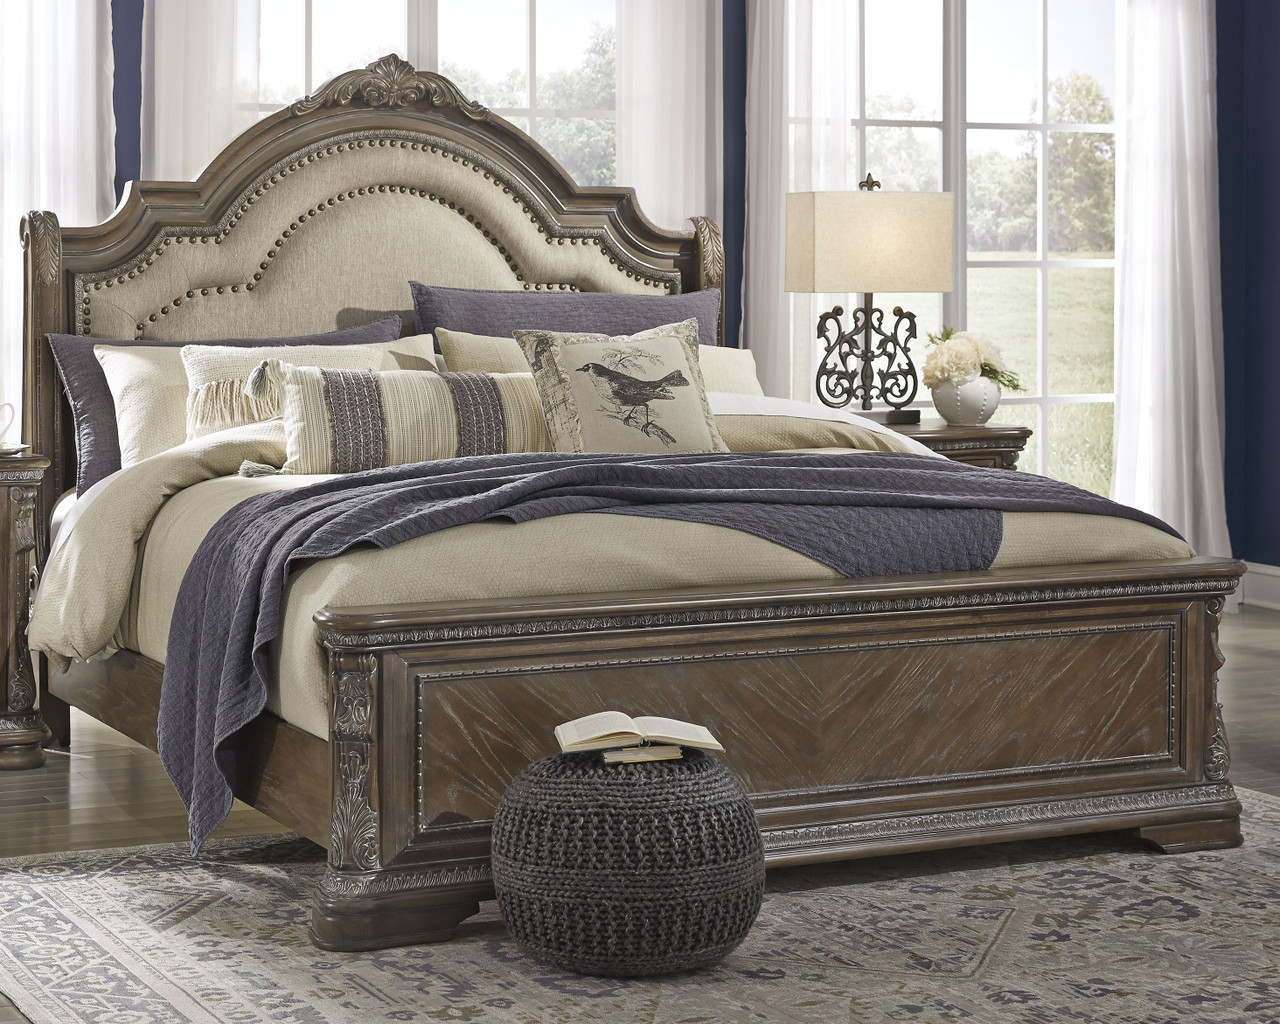 Picture of: Charmond Brown California King Upholstered Sleigh Bed On Sale At American Furniture Of Slidell Serving Slidell La